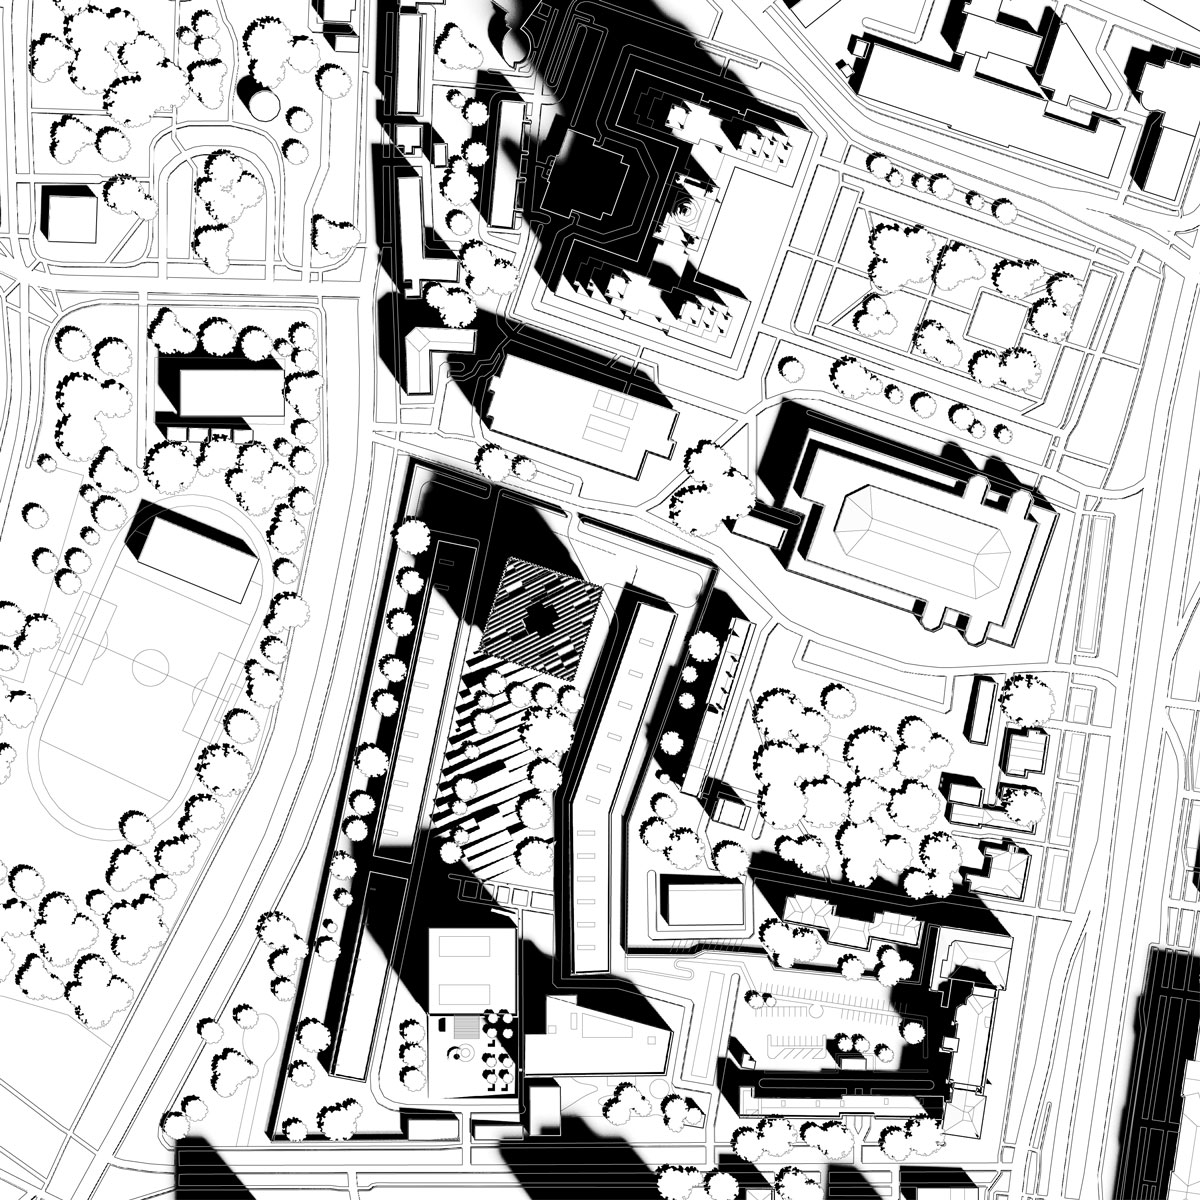 Image of the site plan of the embassy compound, with the new chancery to the north